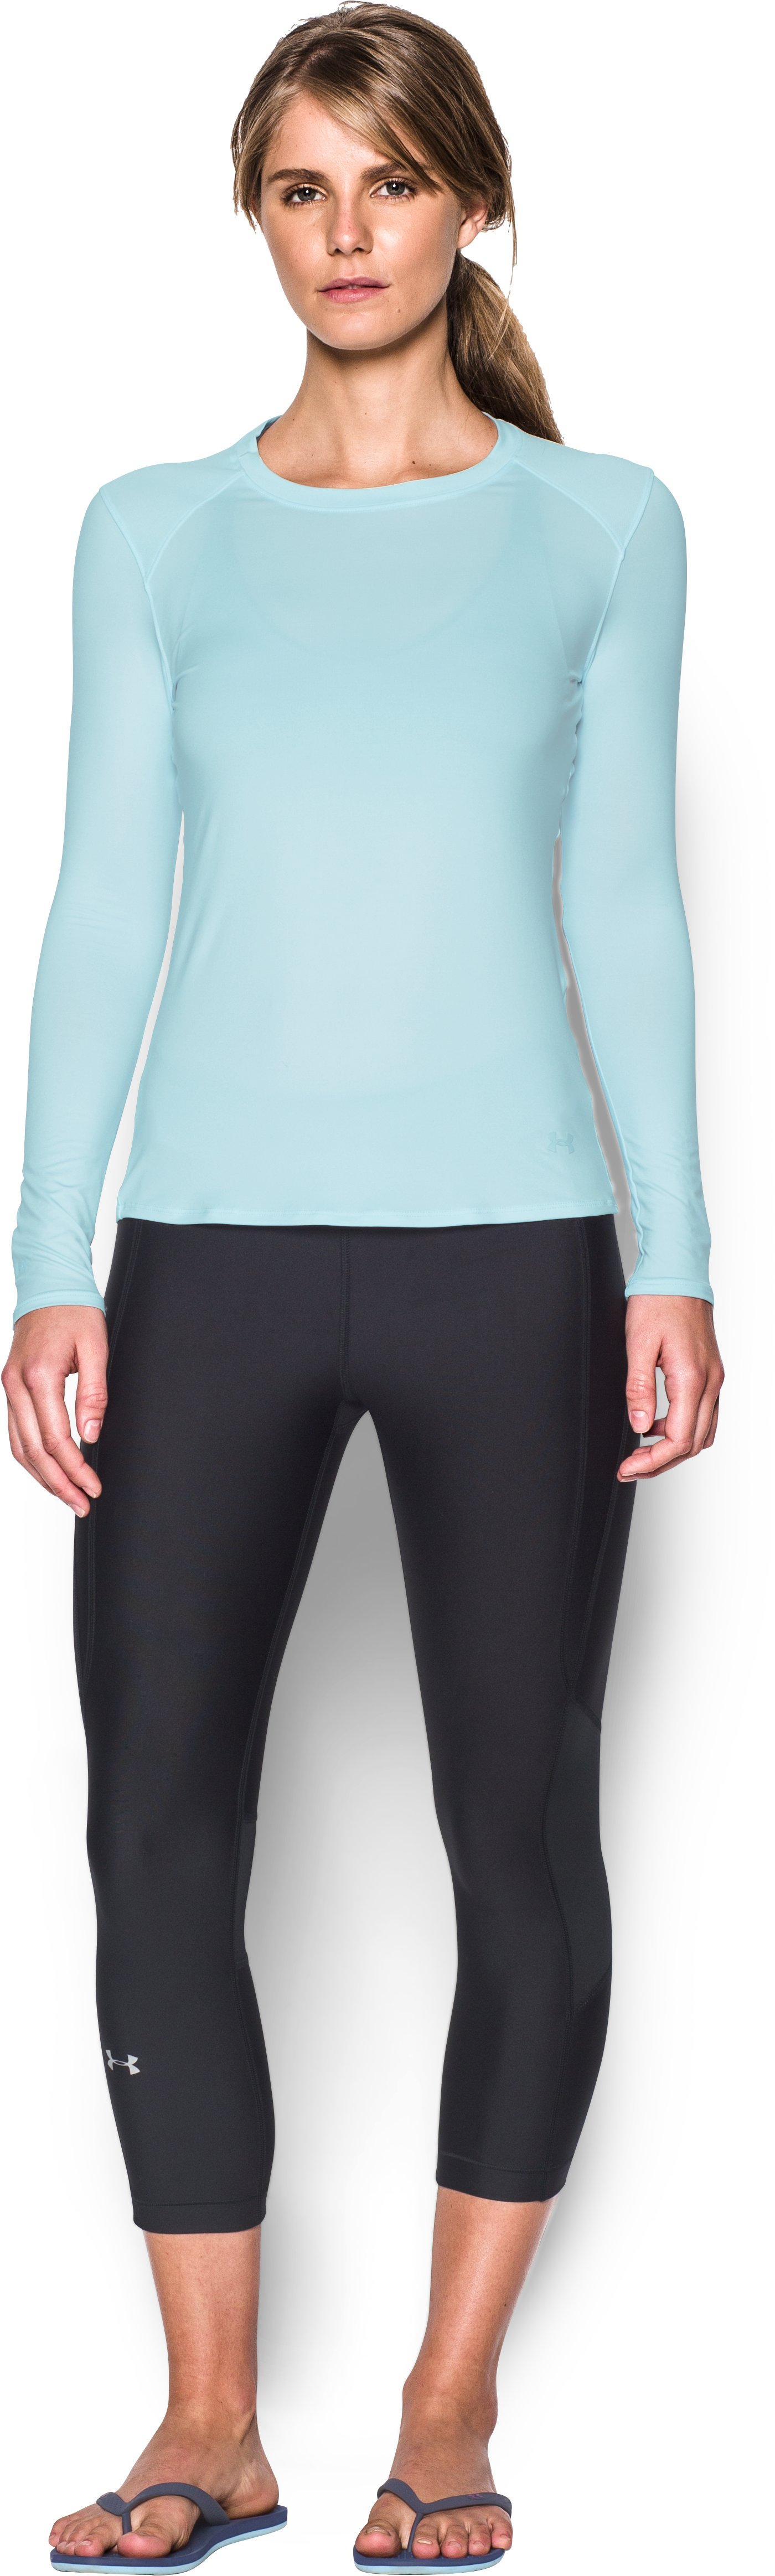 arms sleeves Women's UA 50 Long Sleeve Great fit, fully covers <strong>arms</strong> and neck.